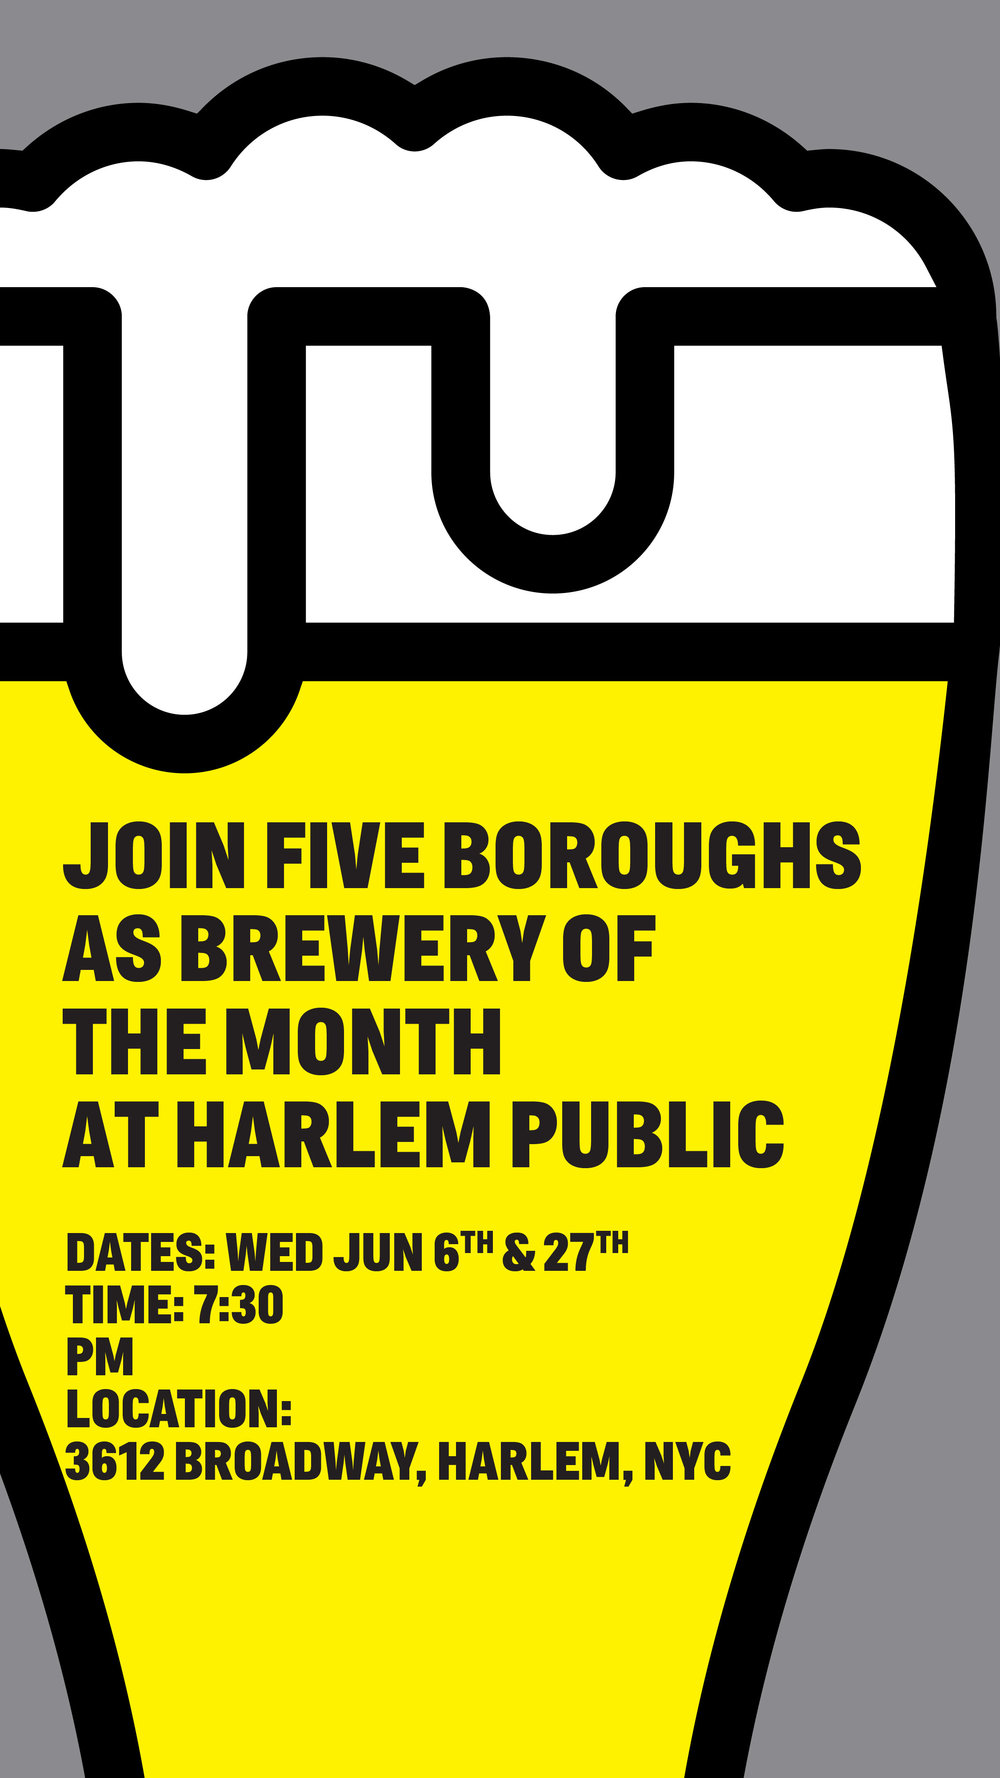 Harlem Public and Five Boroughs-01.jpg